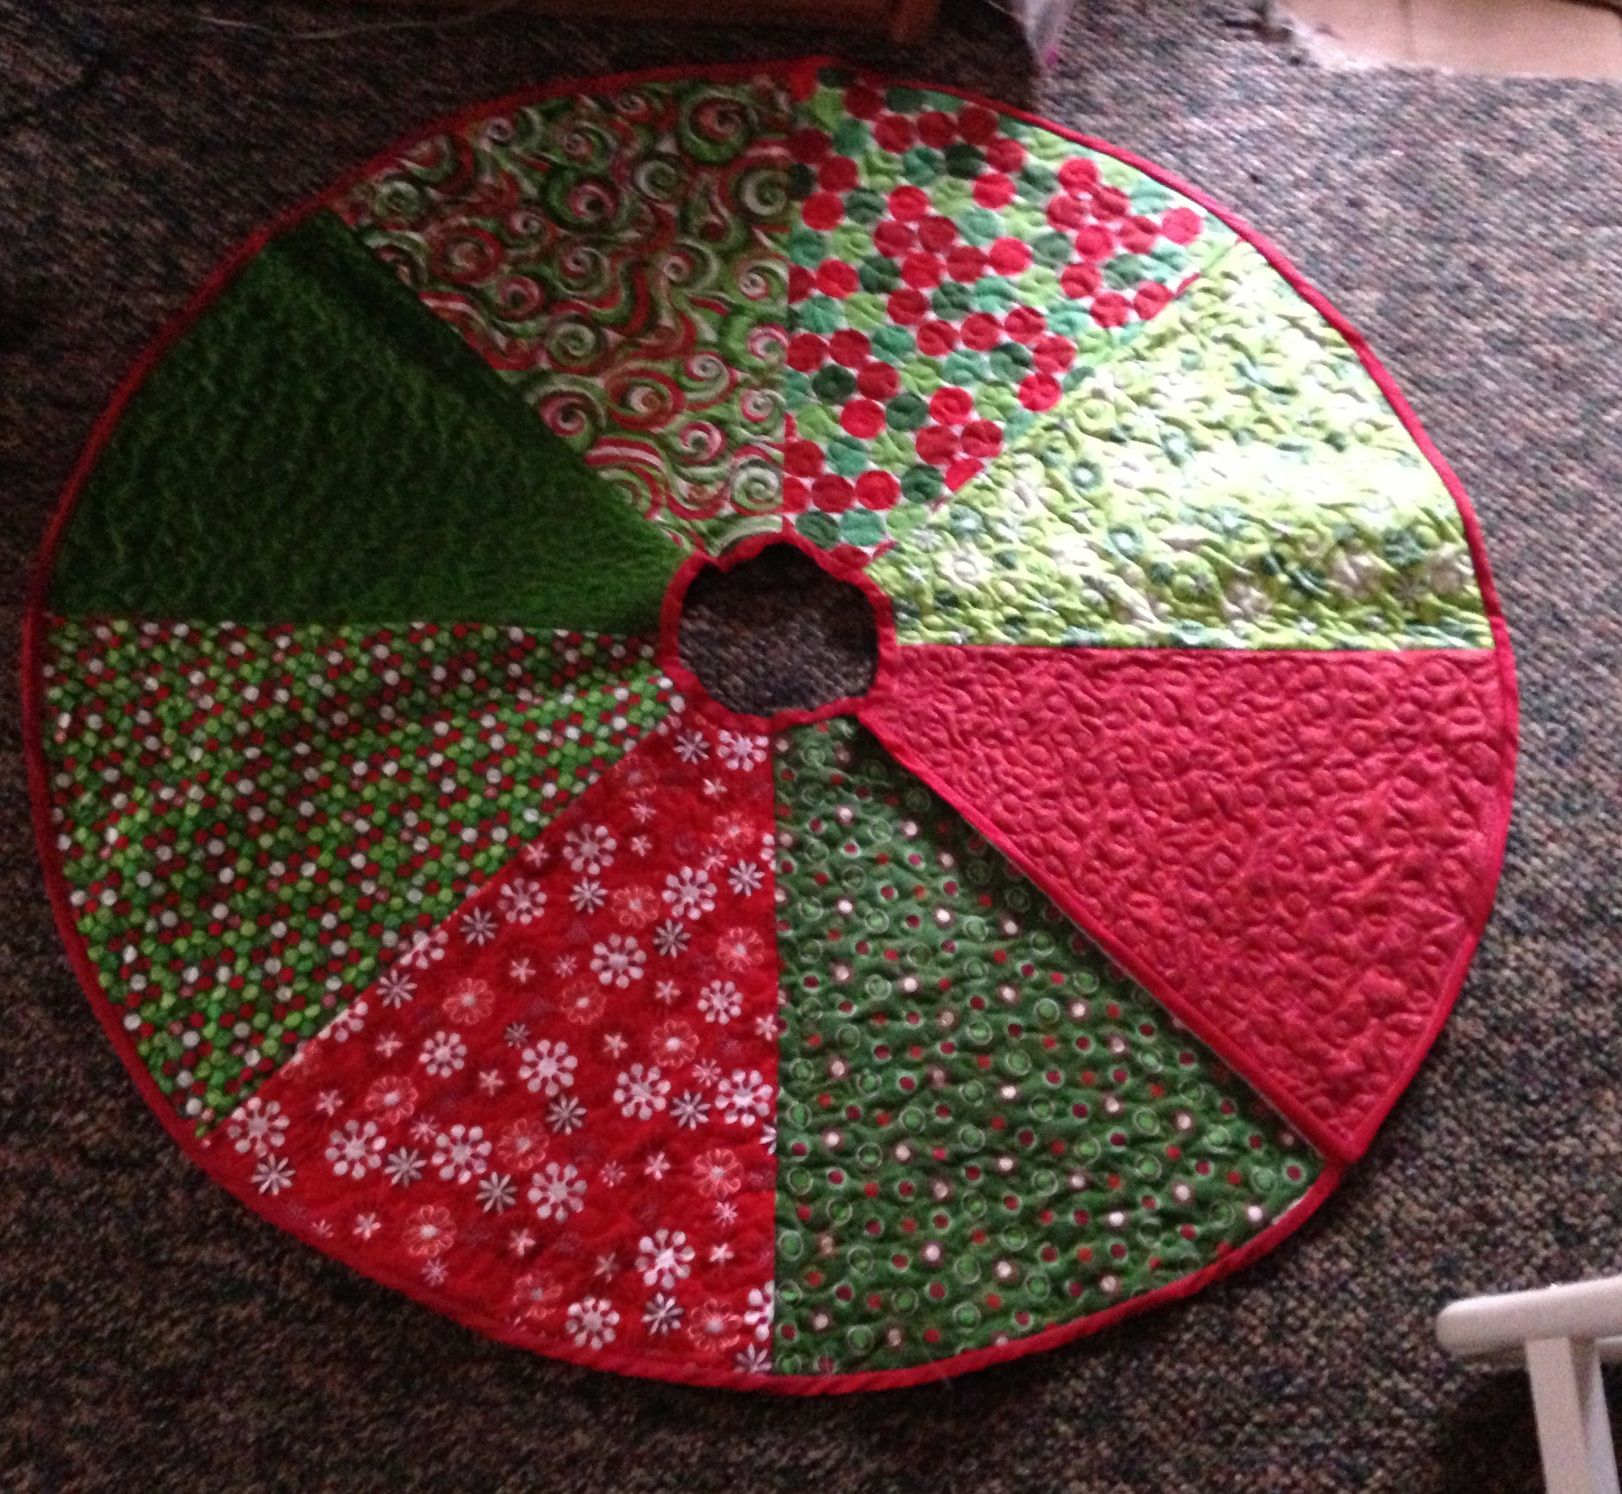 Quilted Christmas Tree Skirt Patterns: Quilted Christmas Tree Skirt